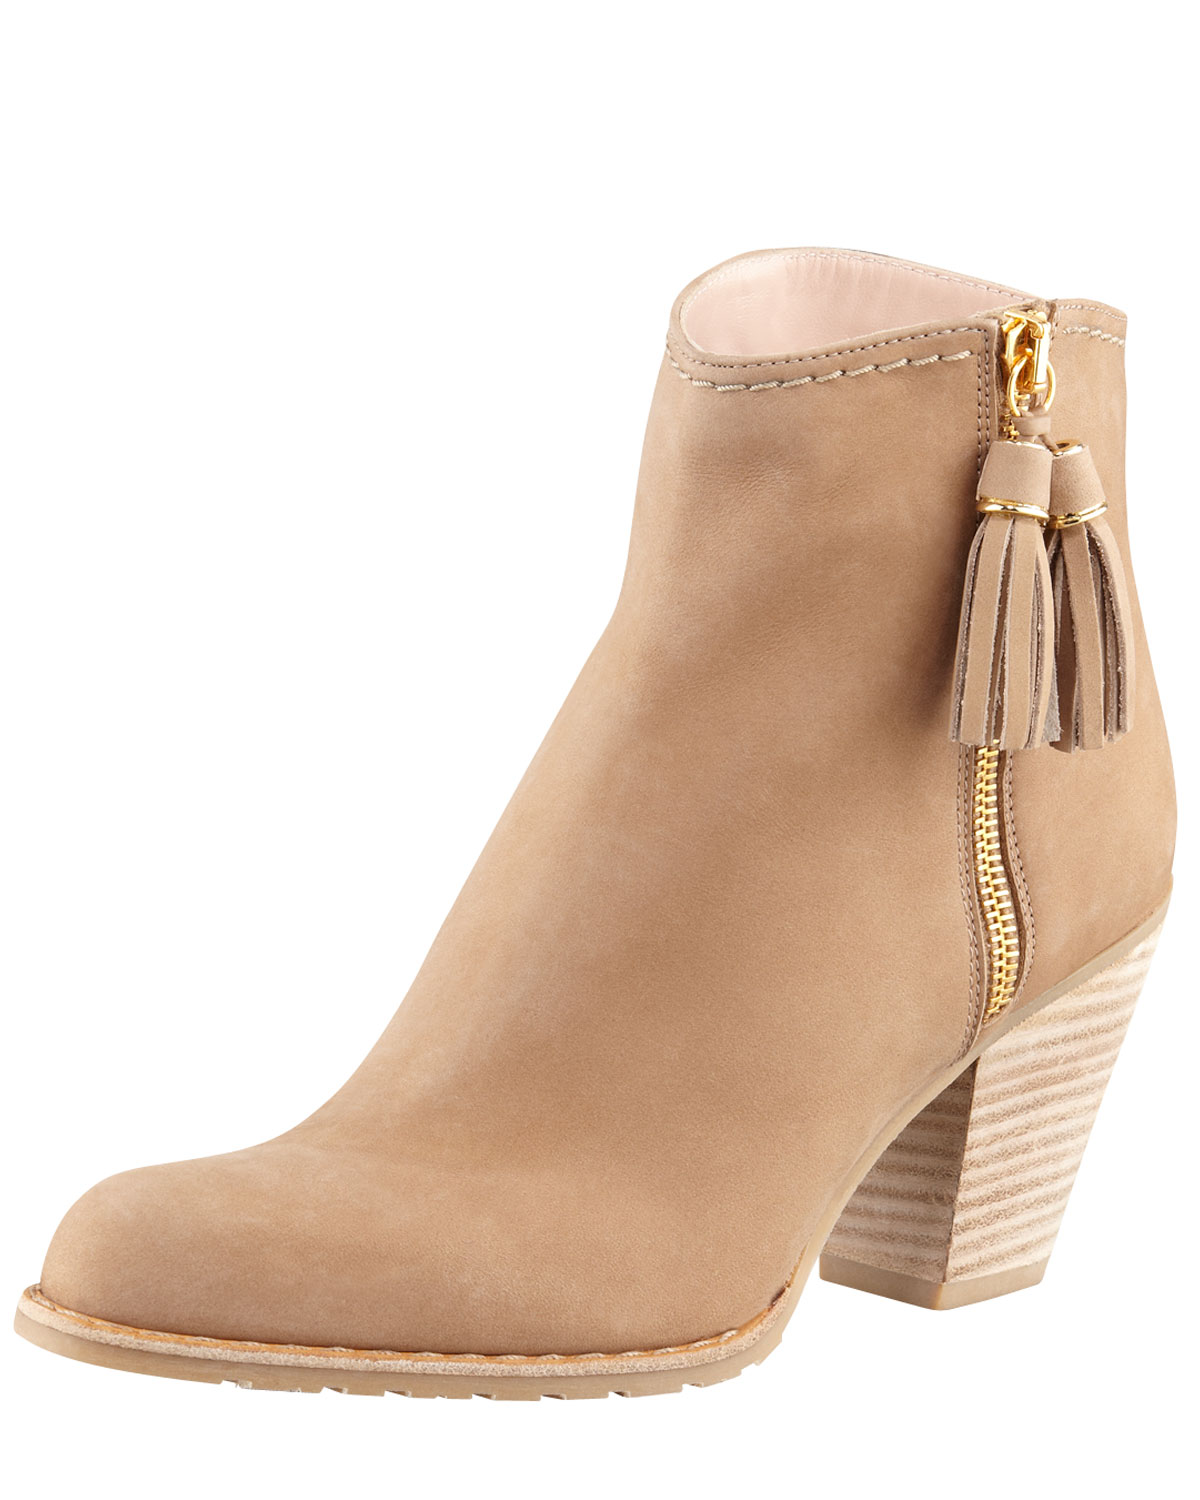 Tan Ankle Boots For Women - Yu Boots